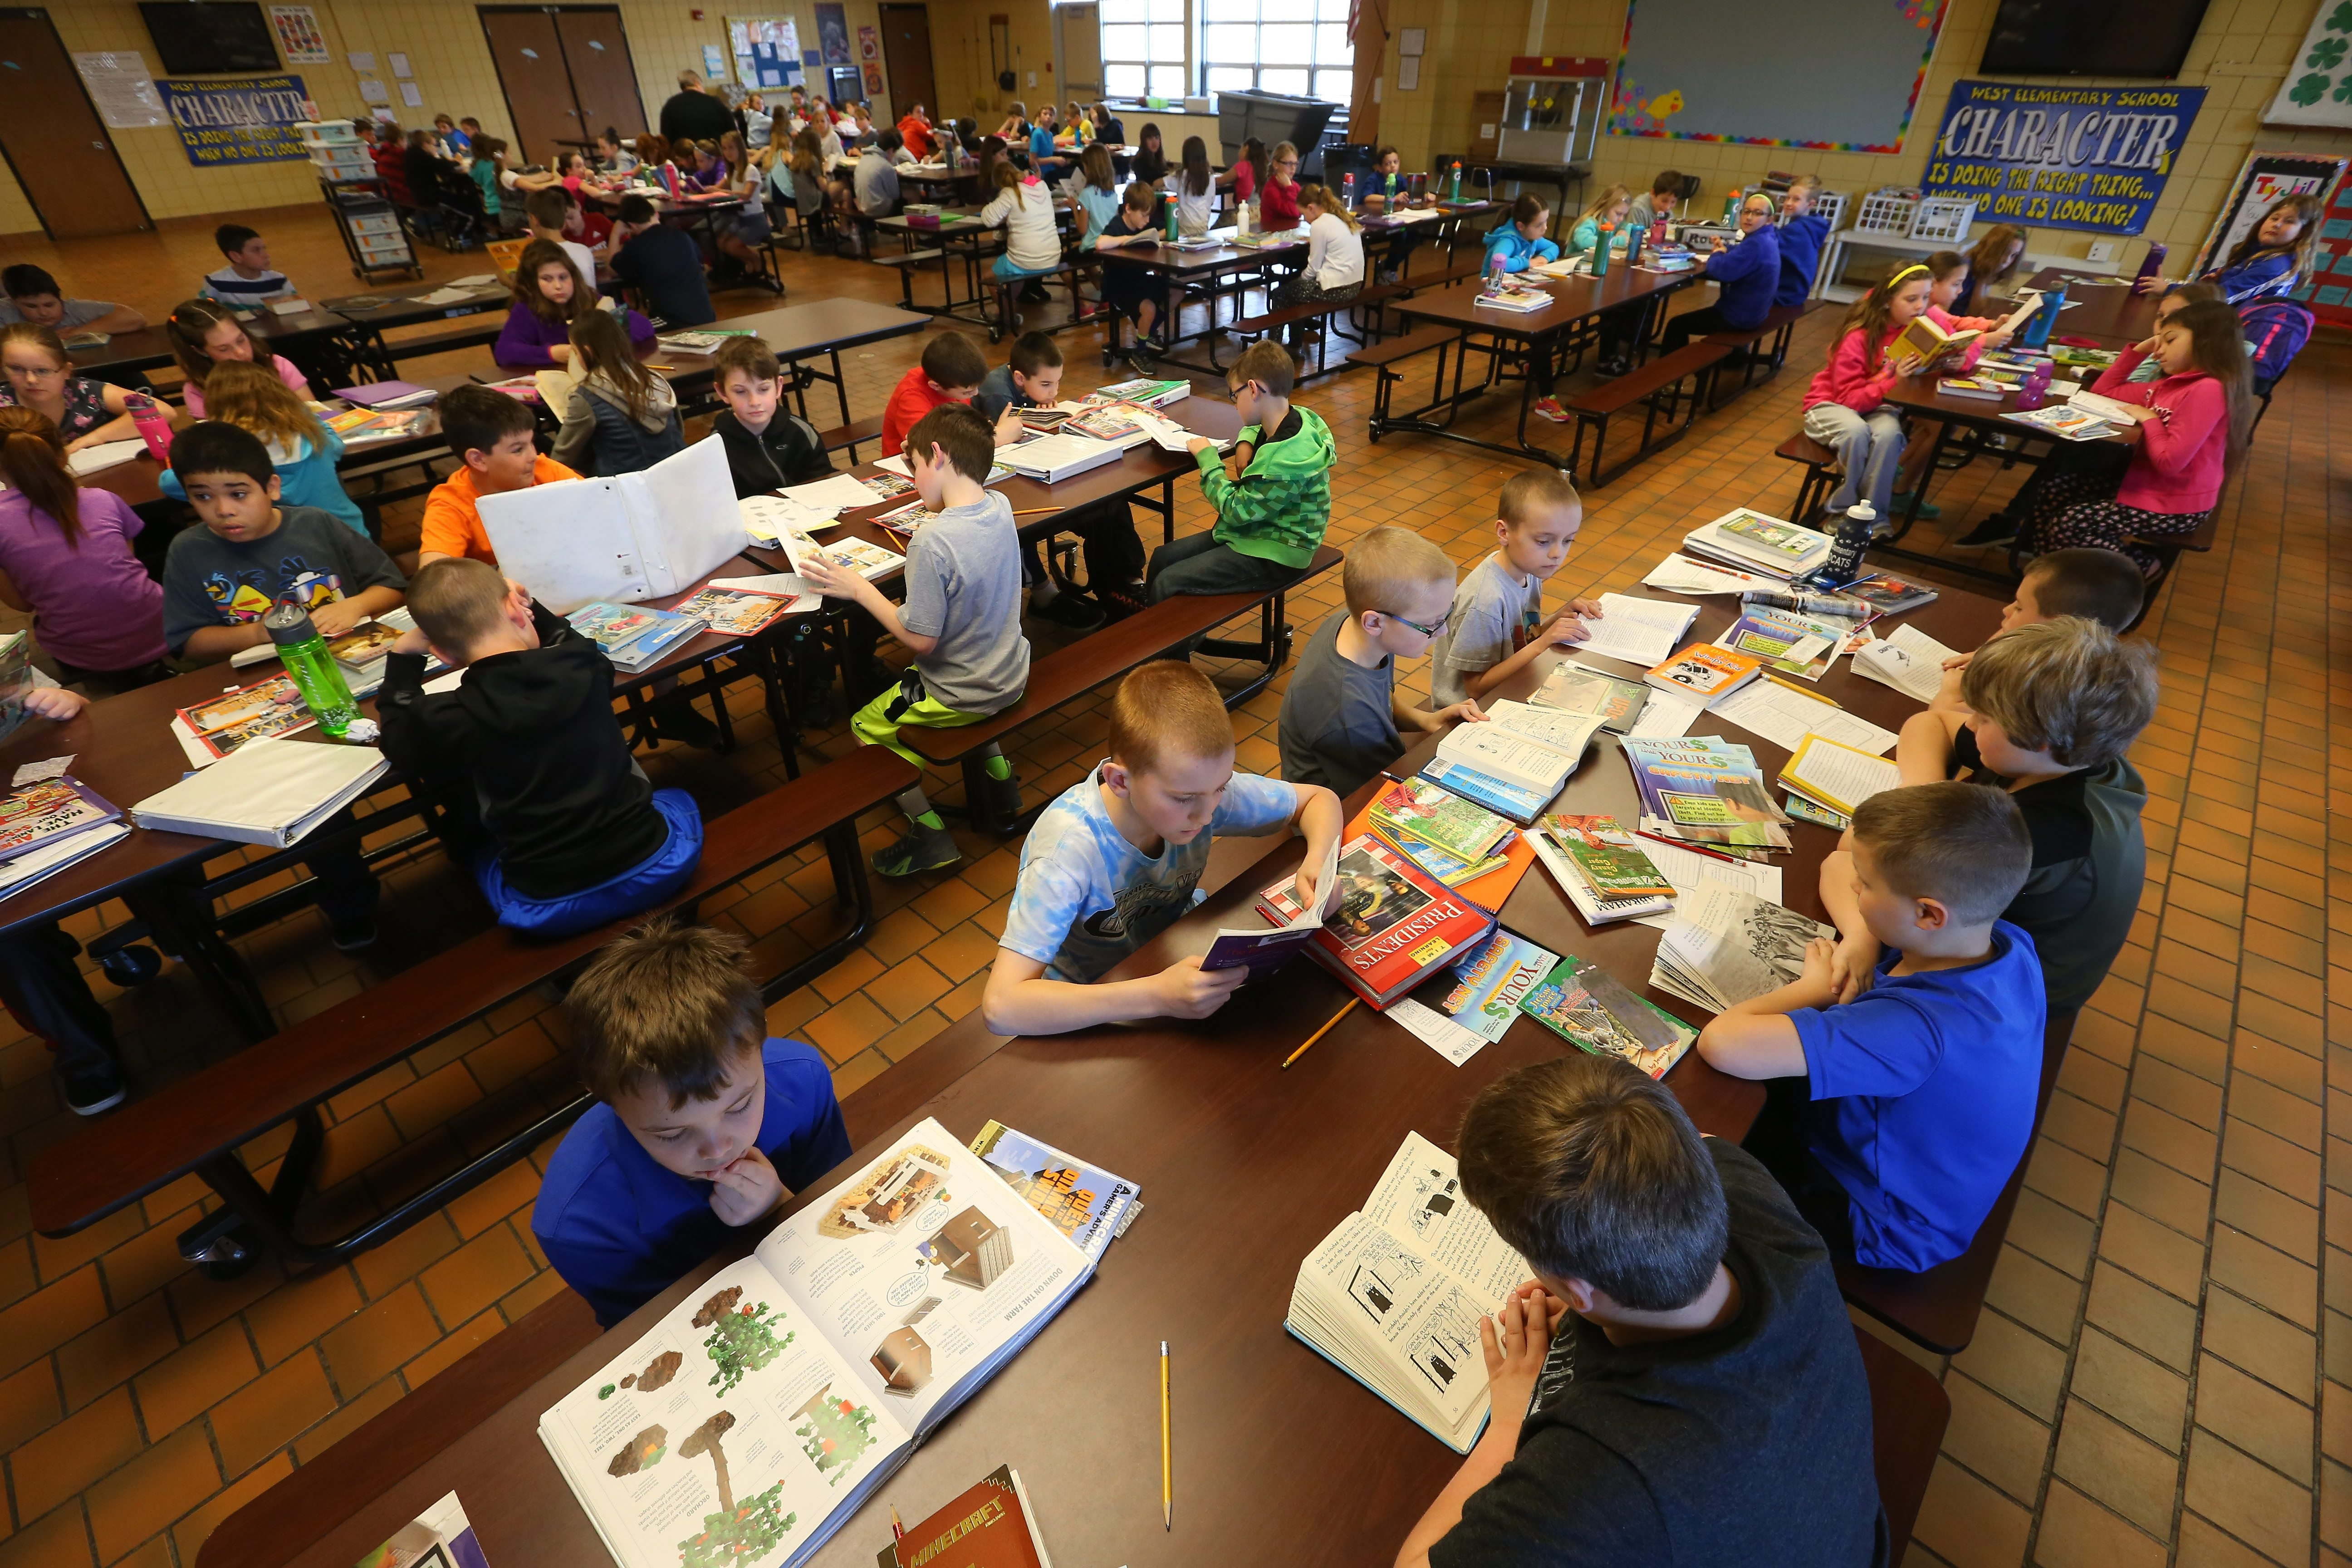 It is not yet clear what impact action at the state and federal level will have on standardized tests given to students. Here pupils opting out of state testing fill the cafeteria at West Elementary in West Seneca in April.  (Mark Mulville/Buffalo News file photo)